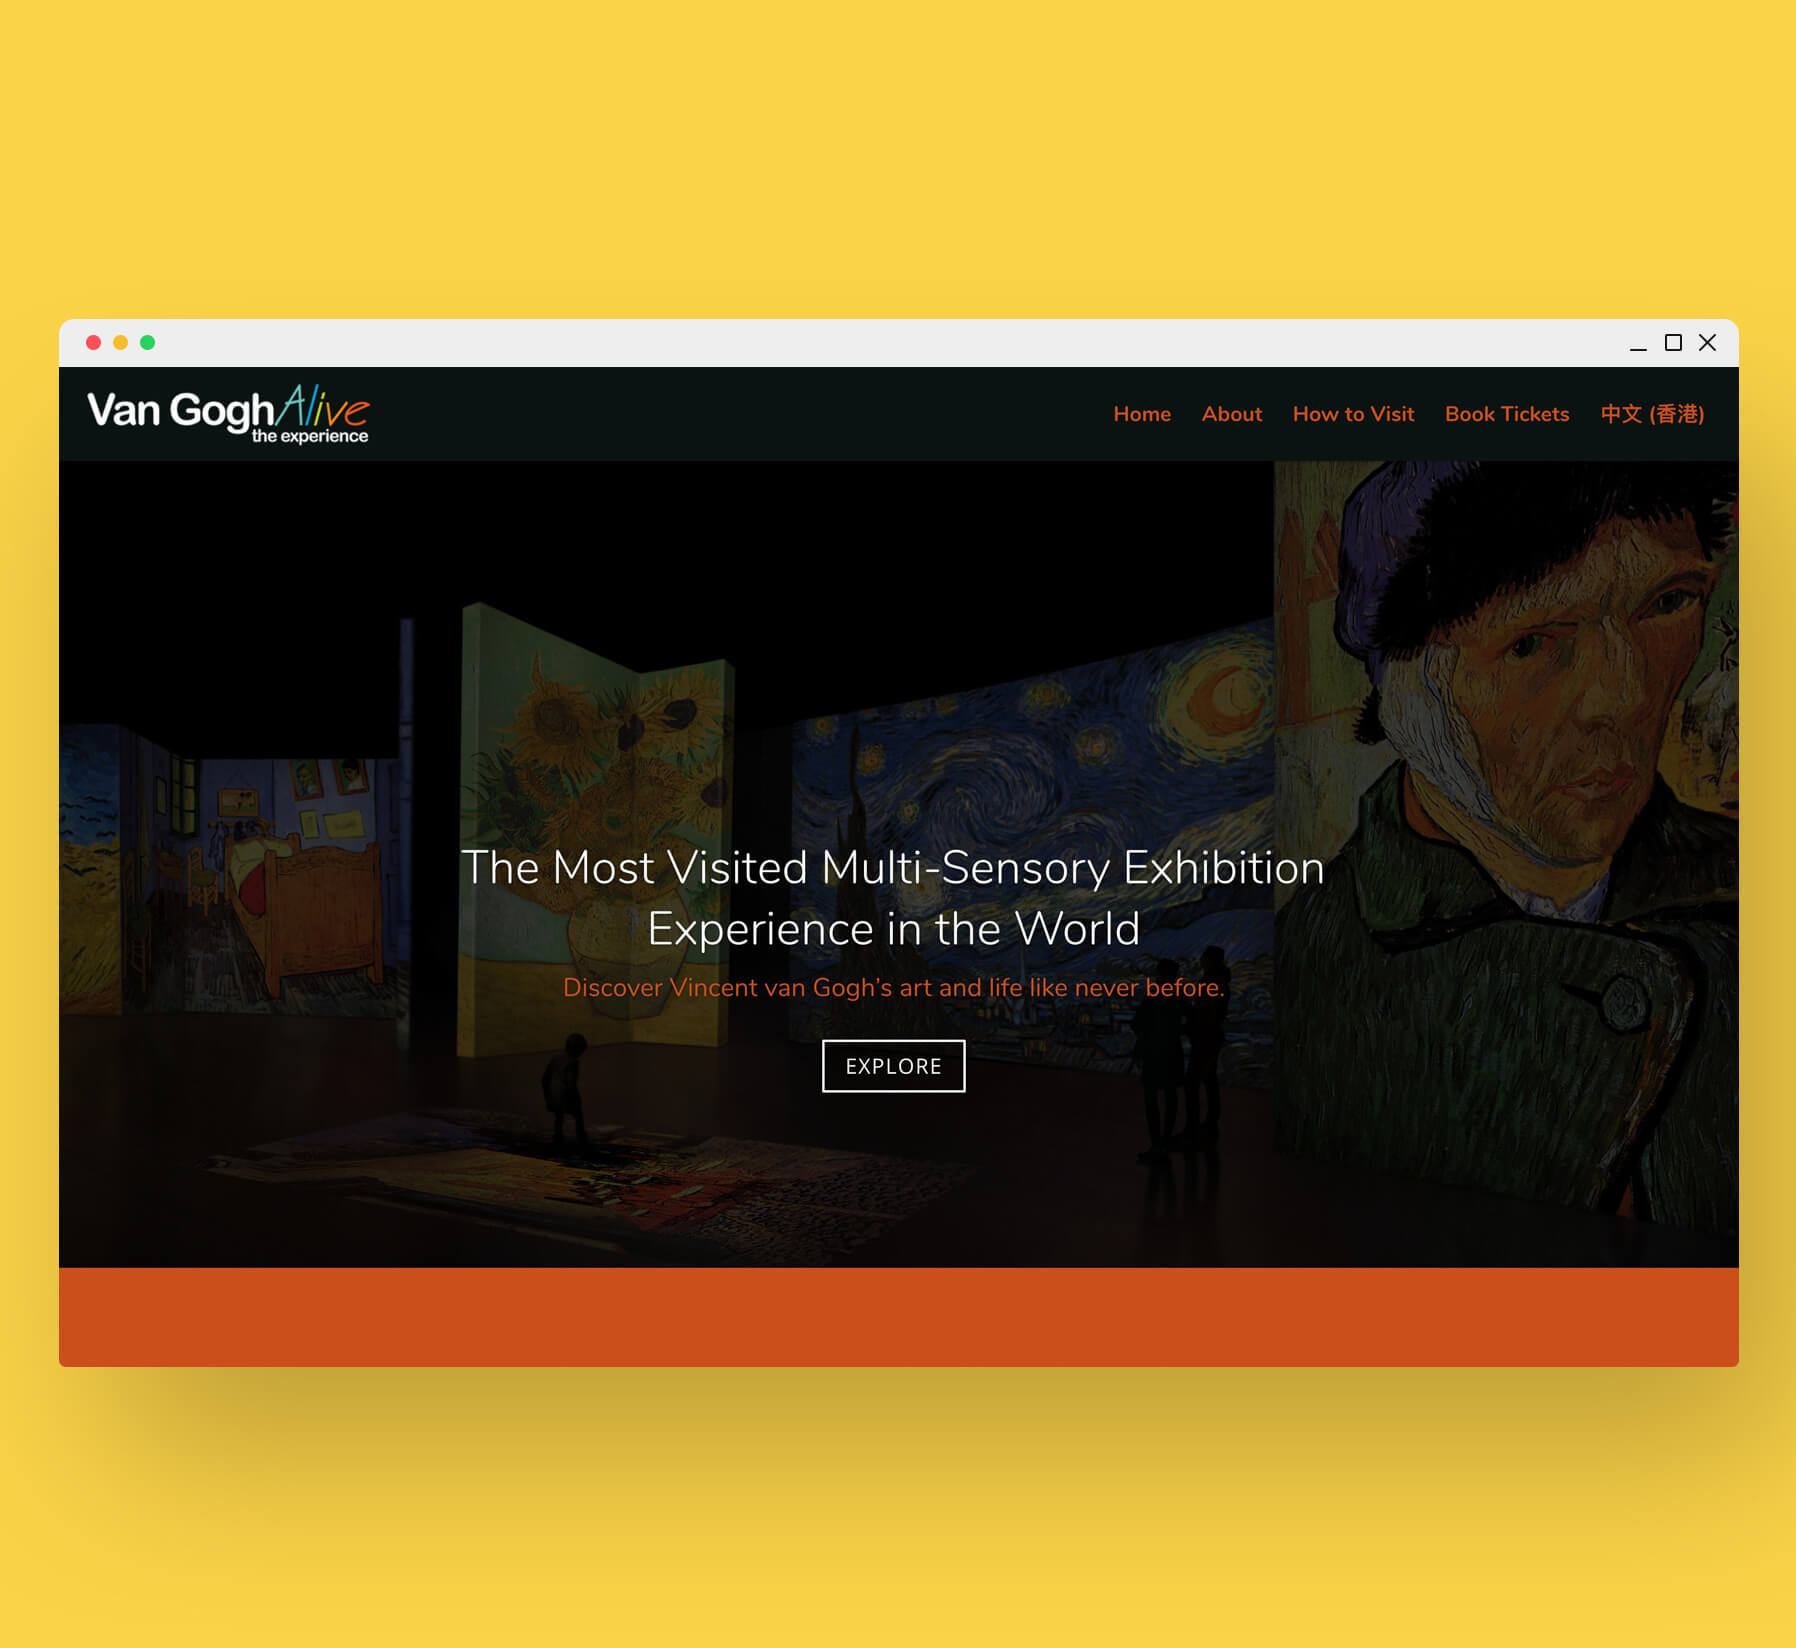 Van Gogh Alive Website